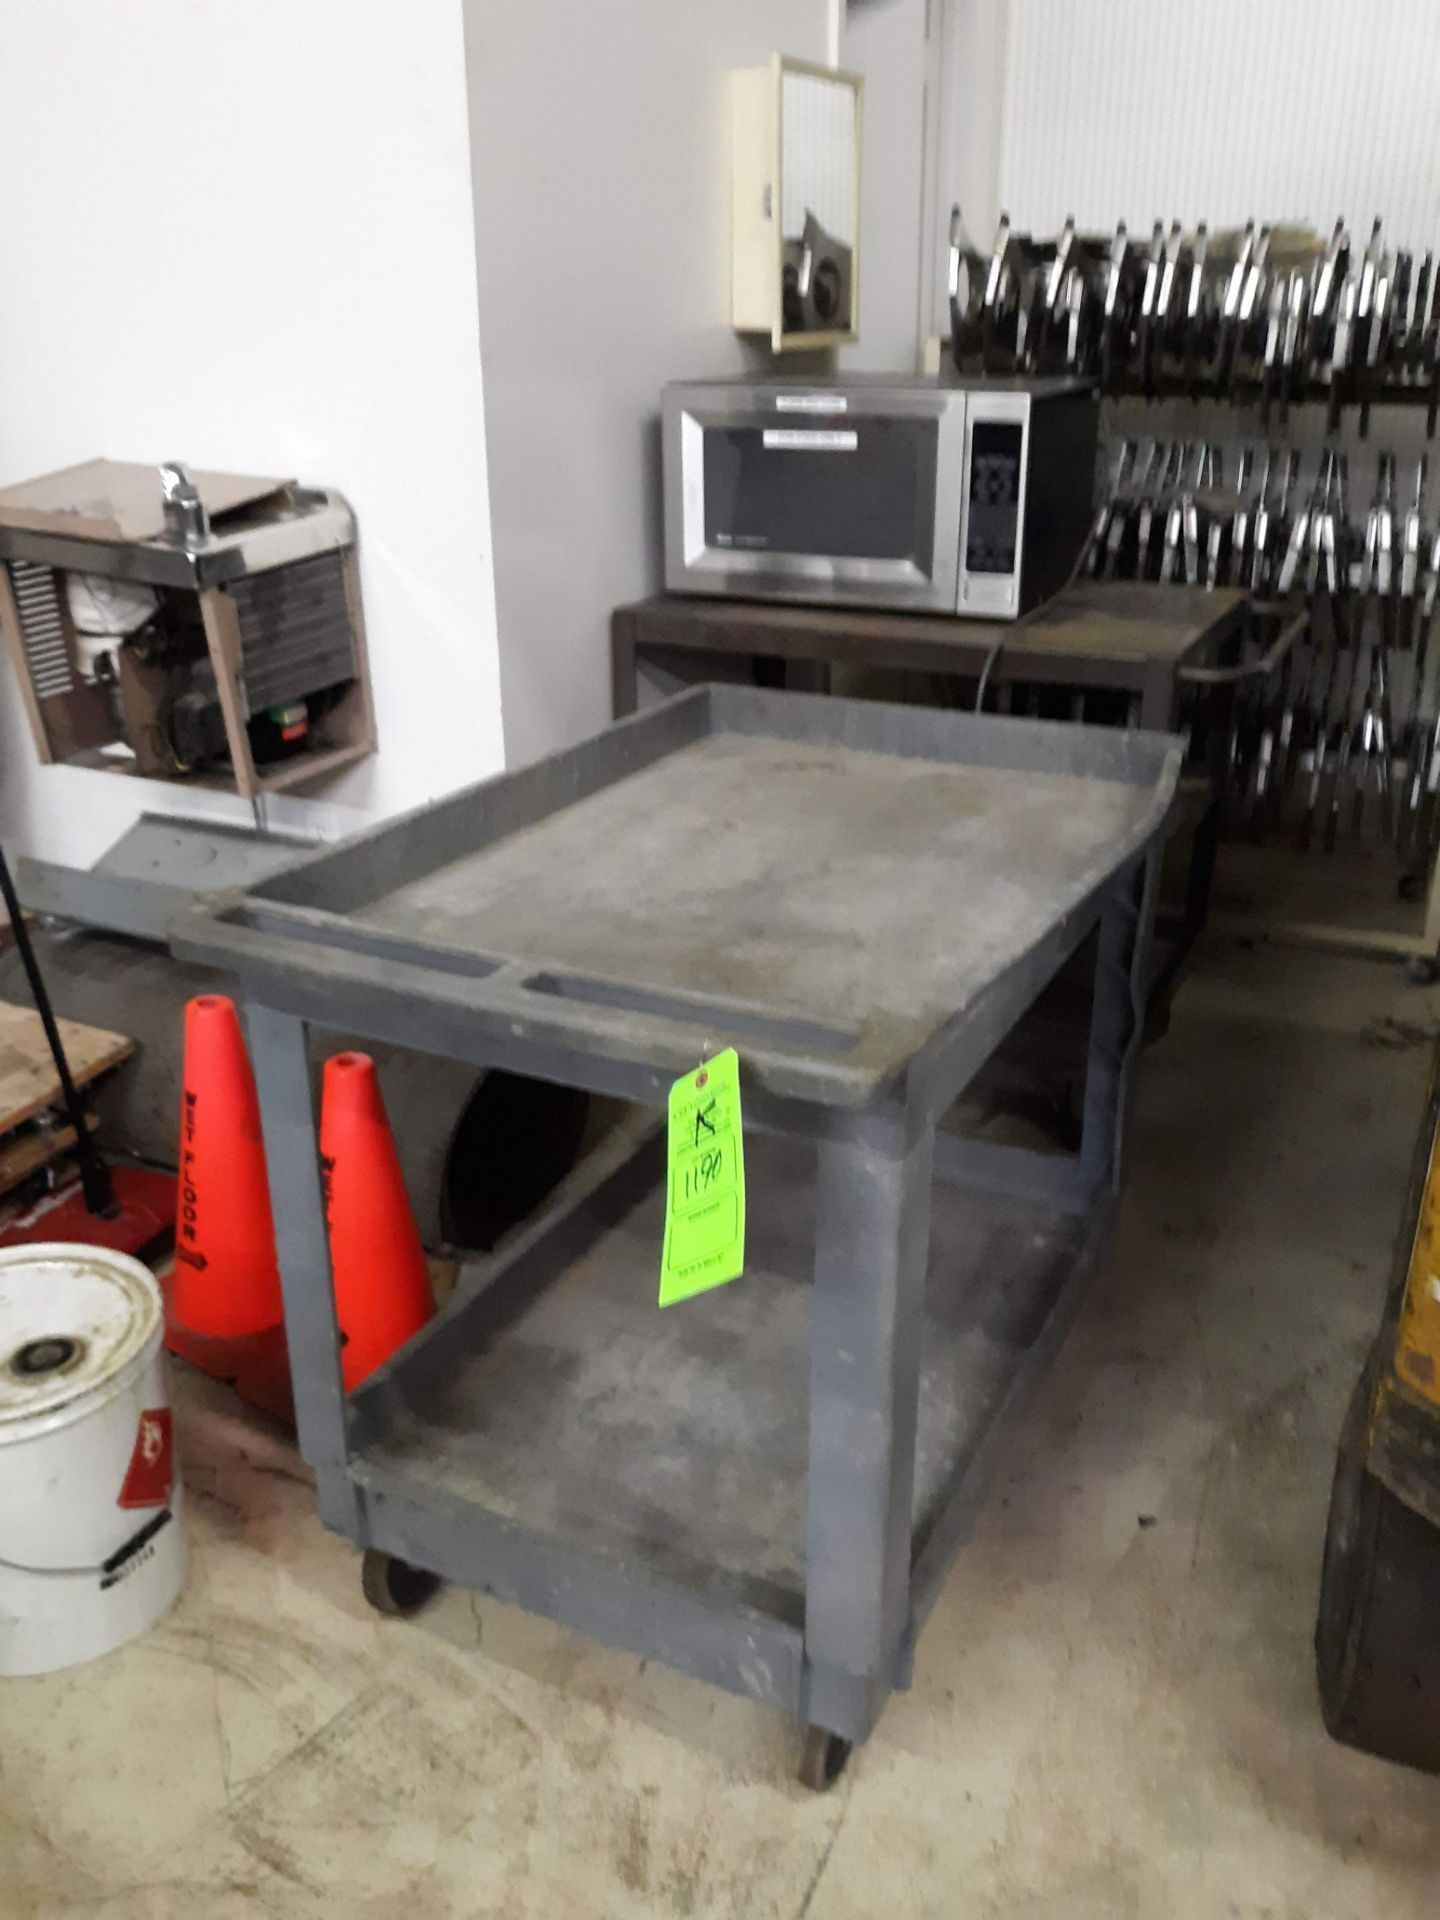 Lot 1190 - RUBBERMAID PLASTIC UTILITY CART (LOCATED AT: 432 COUNCIL DRIVE, FORT WAYNE, IN 46825)